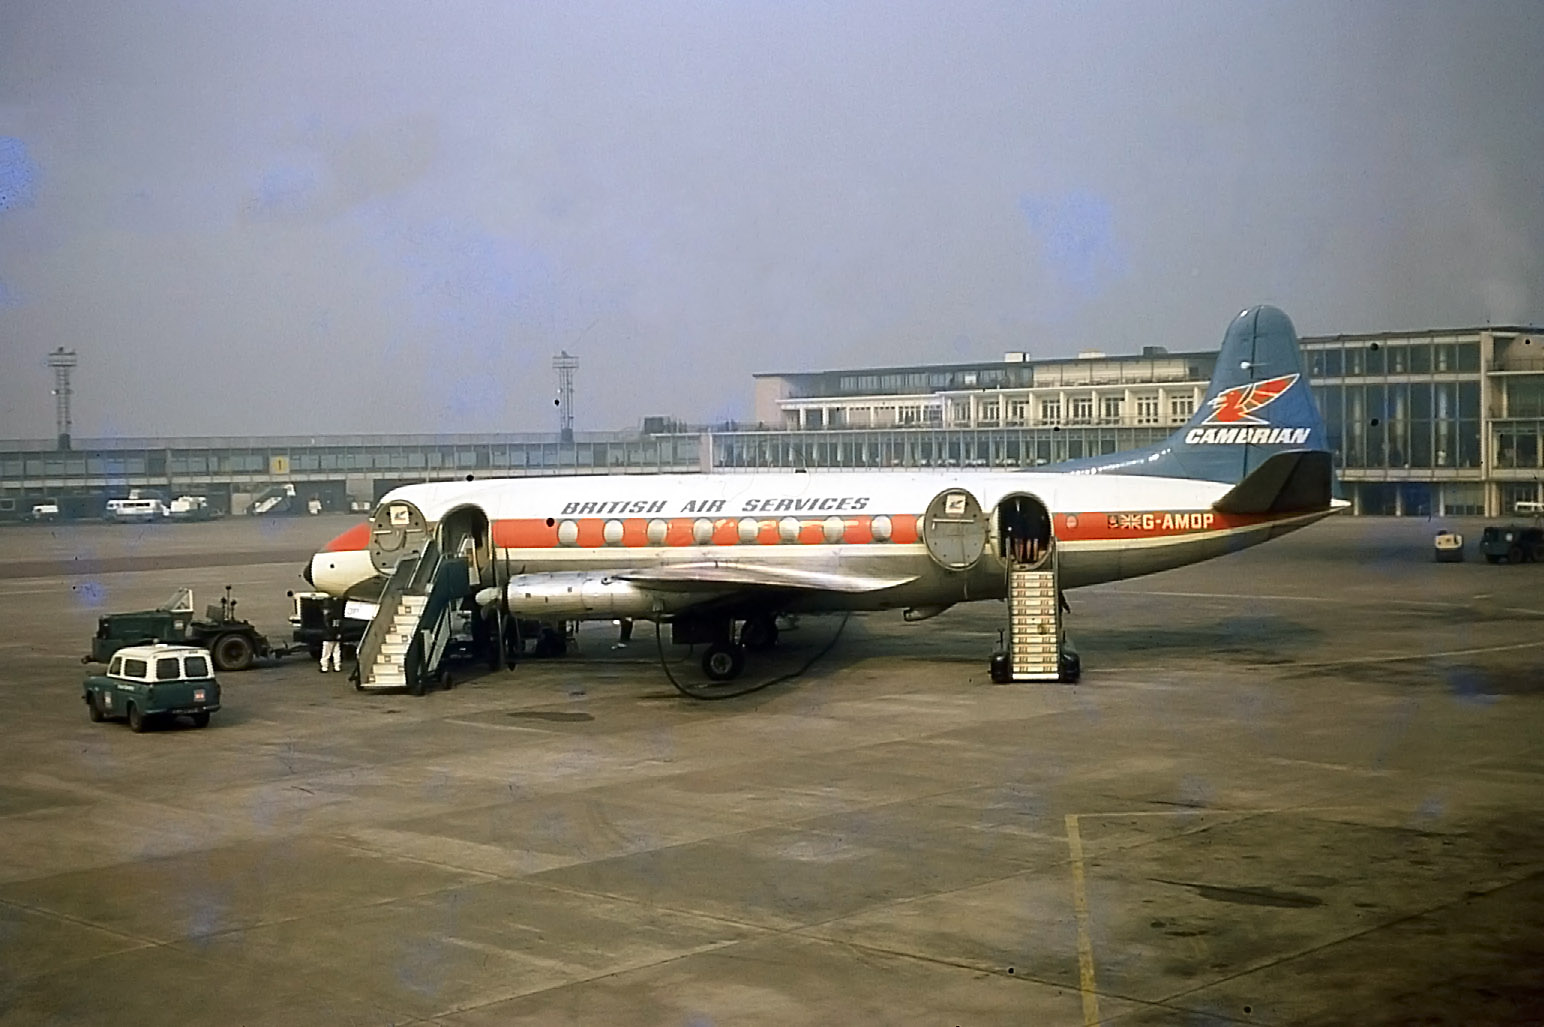 Cambrian / British Air Services Viscount G-AMOP is looking good on Pier A - March 1969 .Peter H